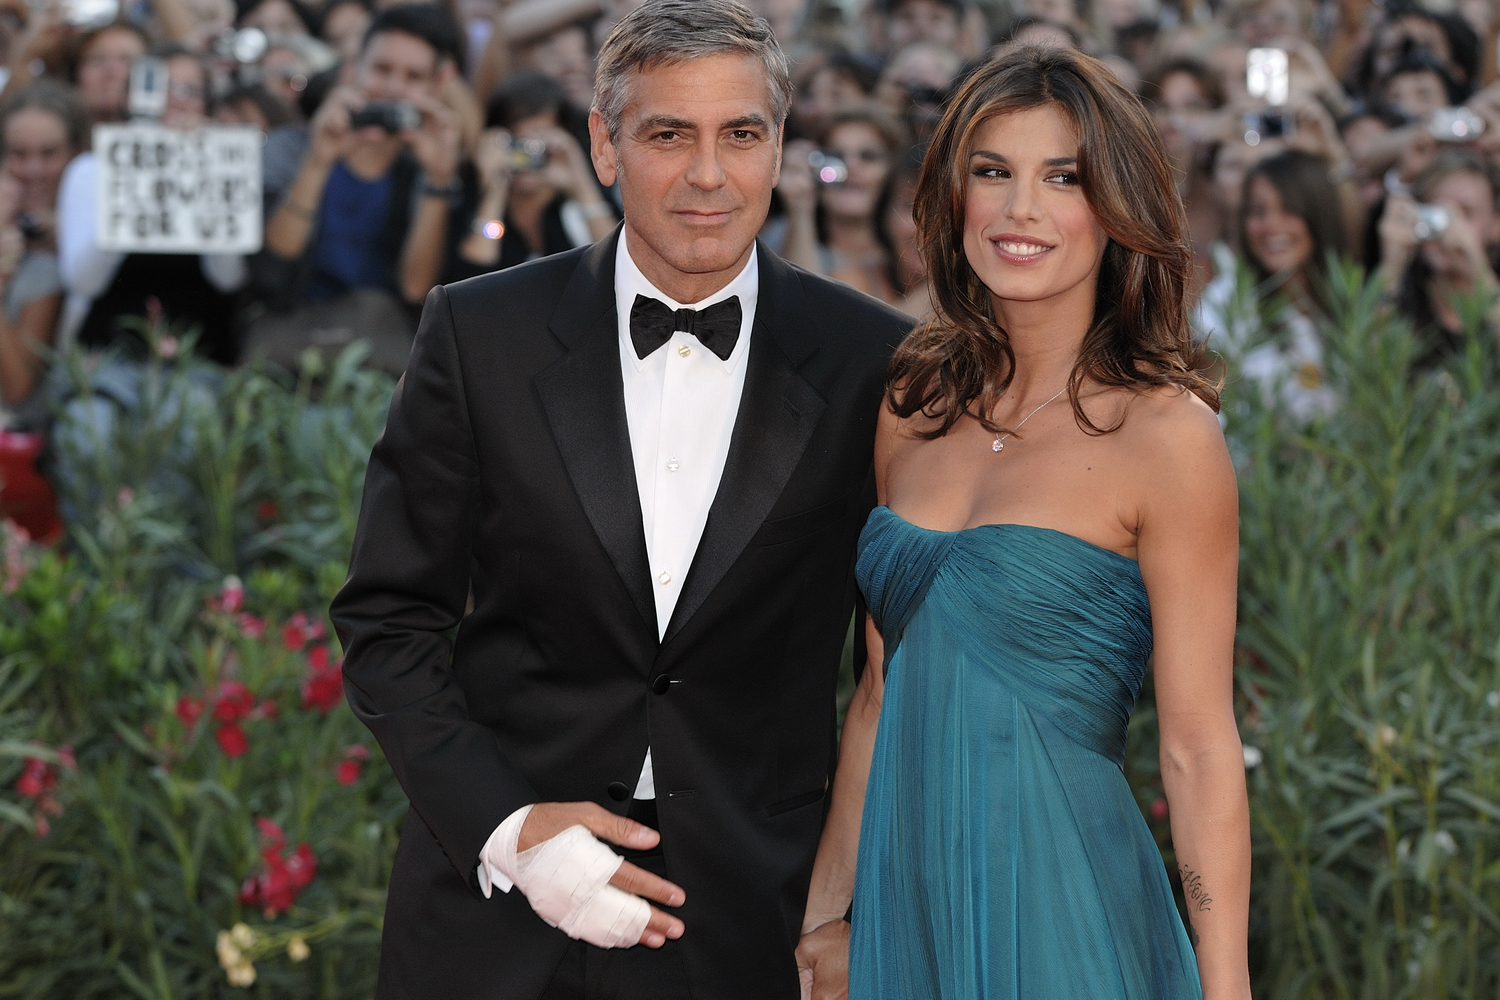 George clooney fiance age - photo#25